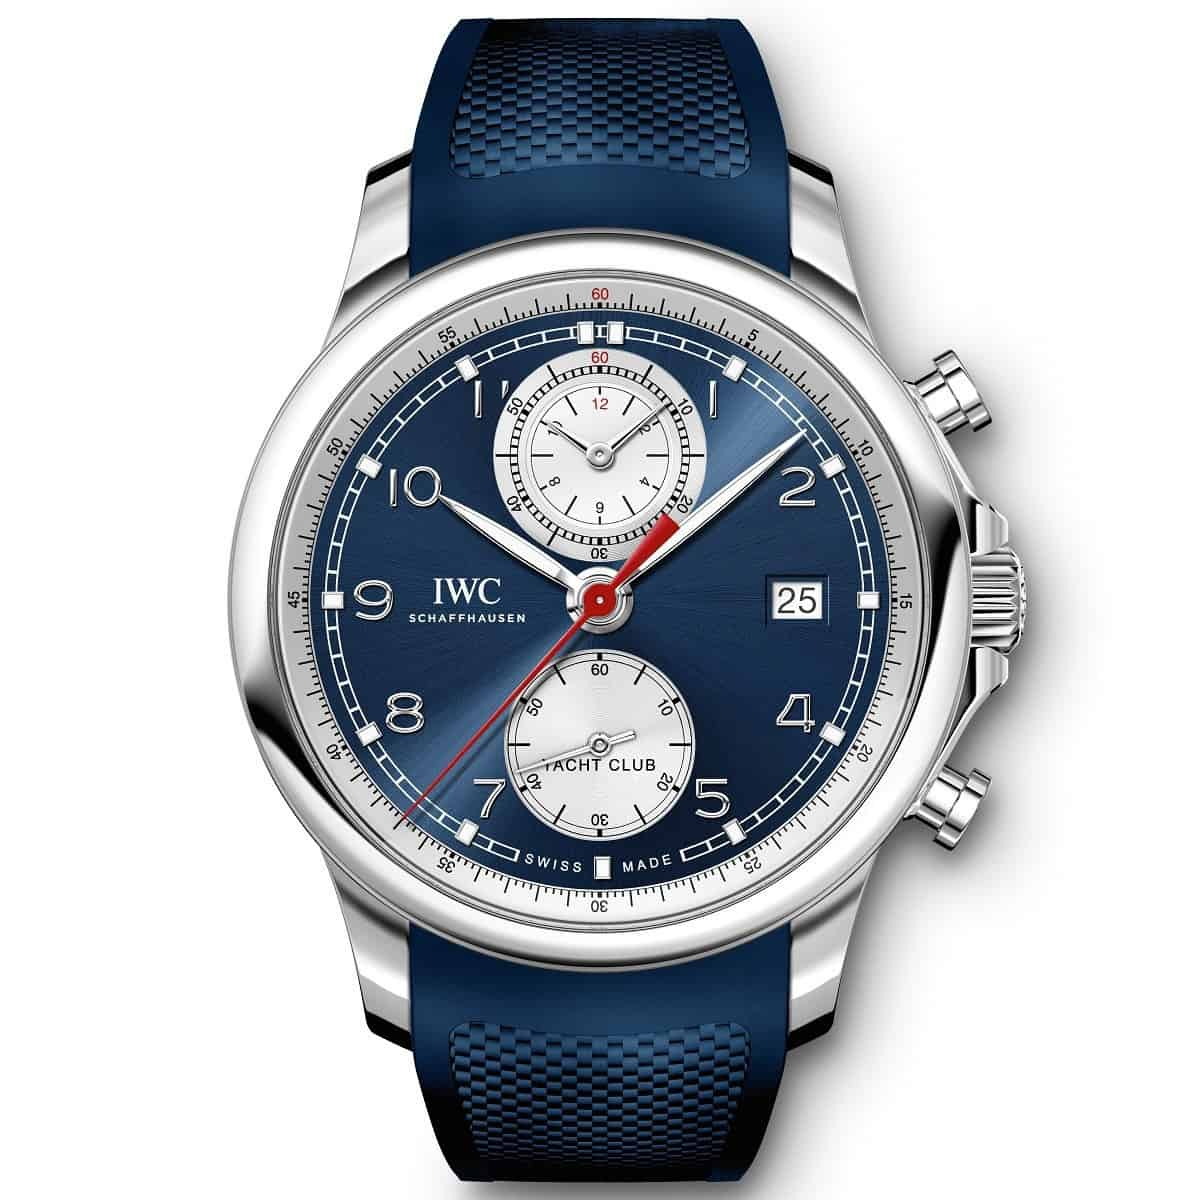 IWC Portugieser Yacht Club Chronograph 'Summer Edition' 2